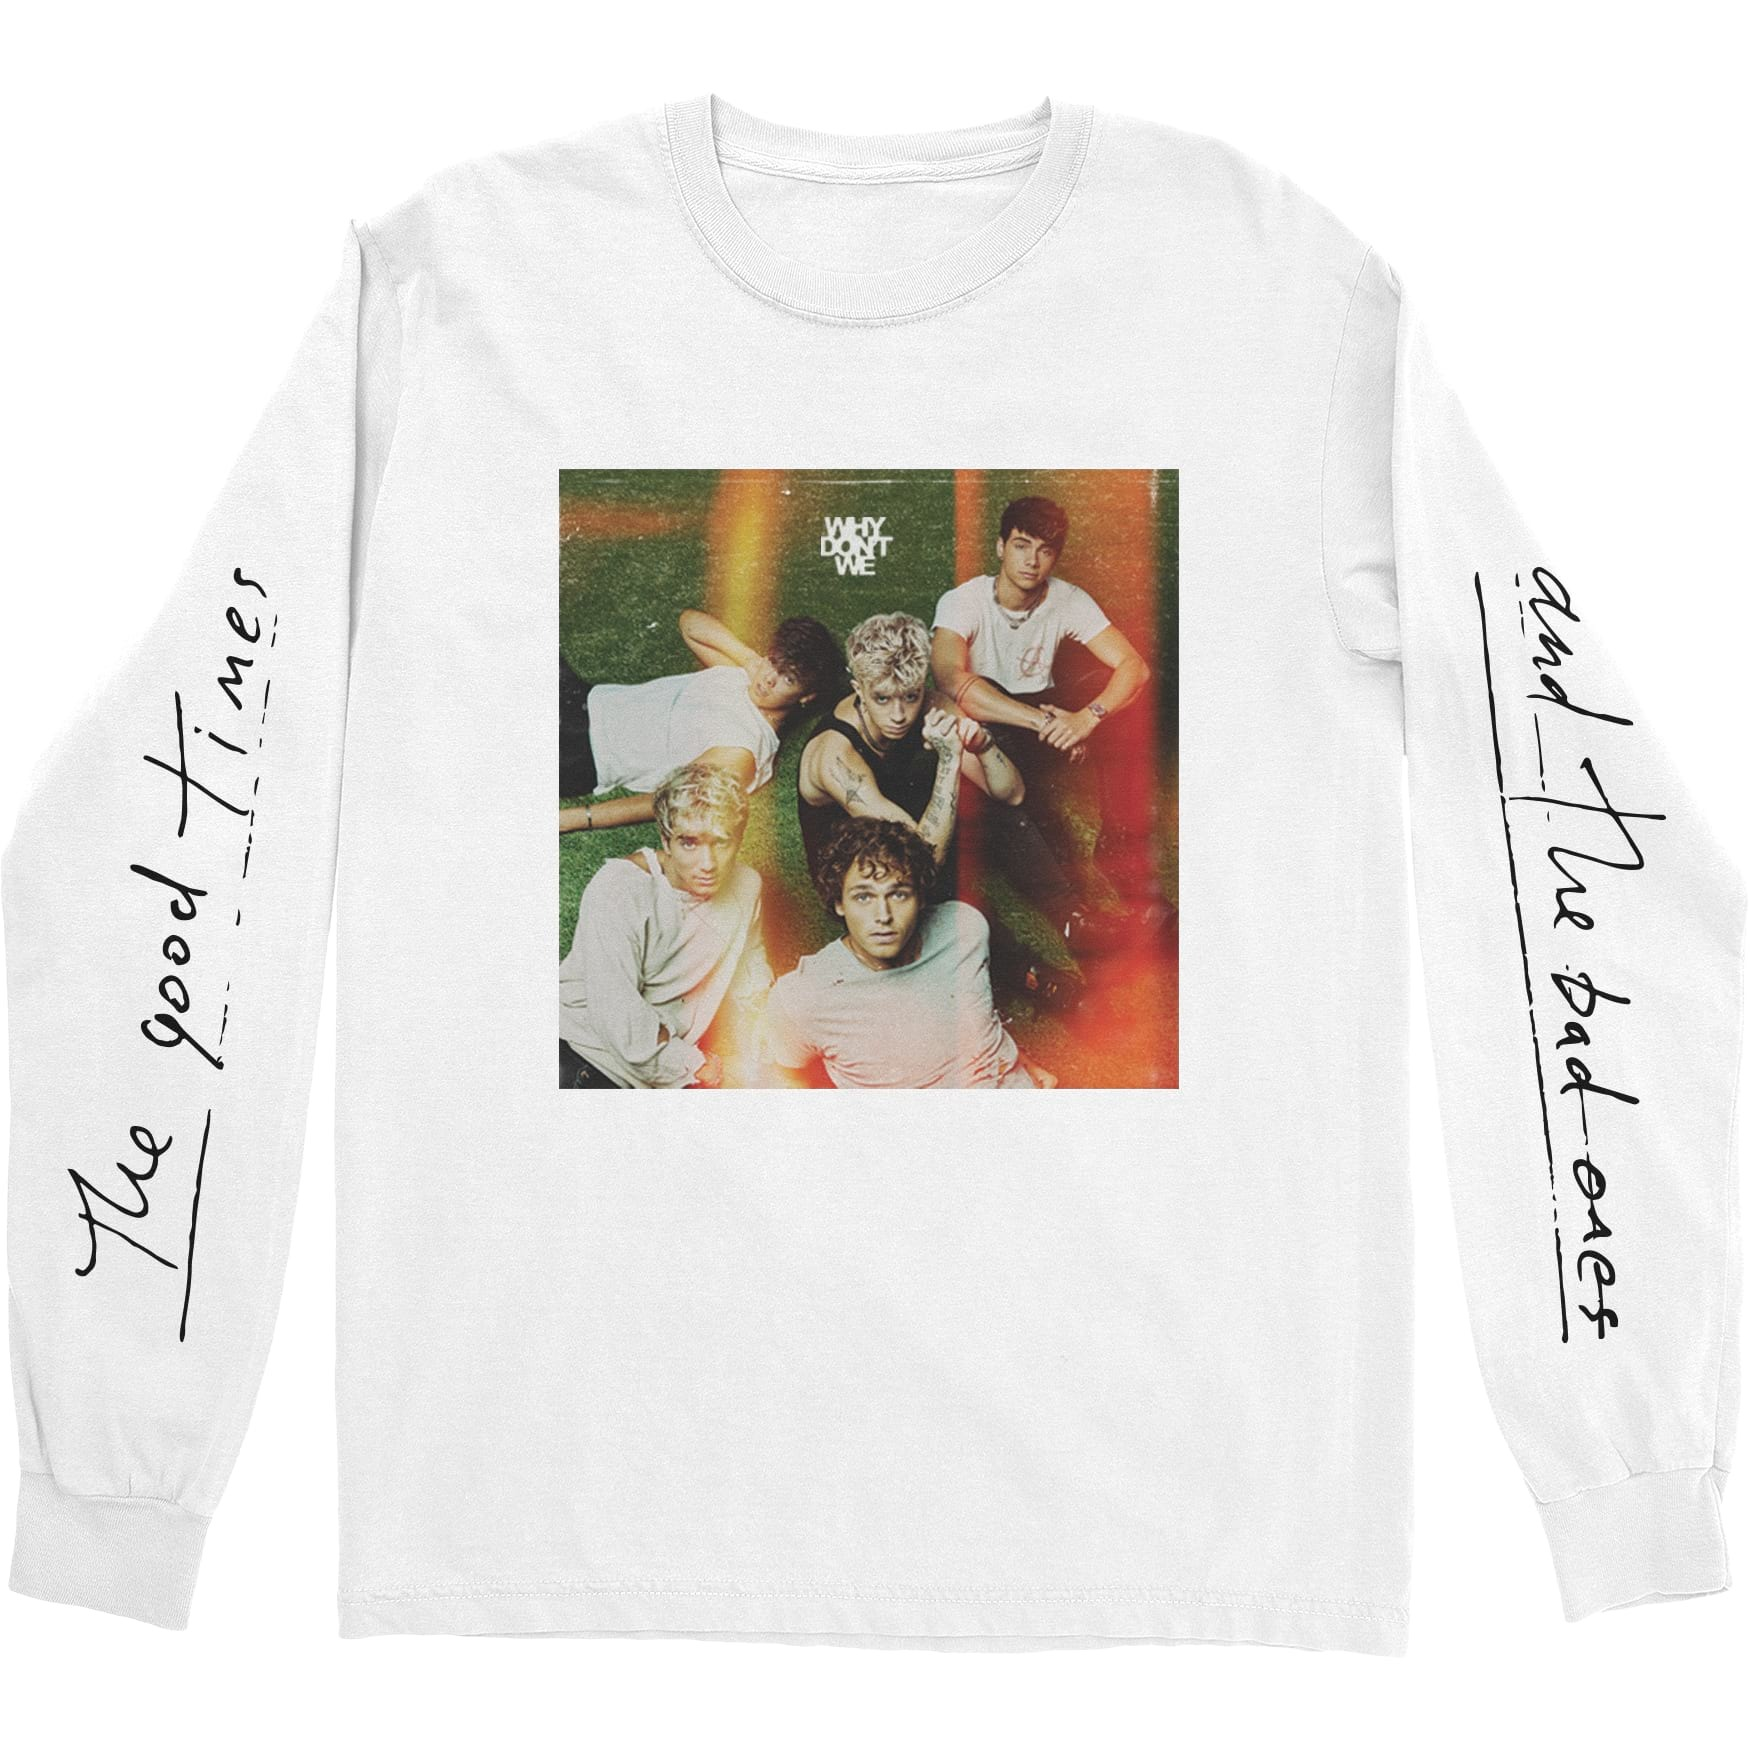 Good Times Cover Long Sleeve T-Shirt product image (1)